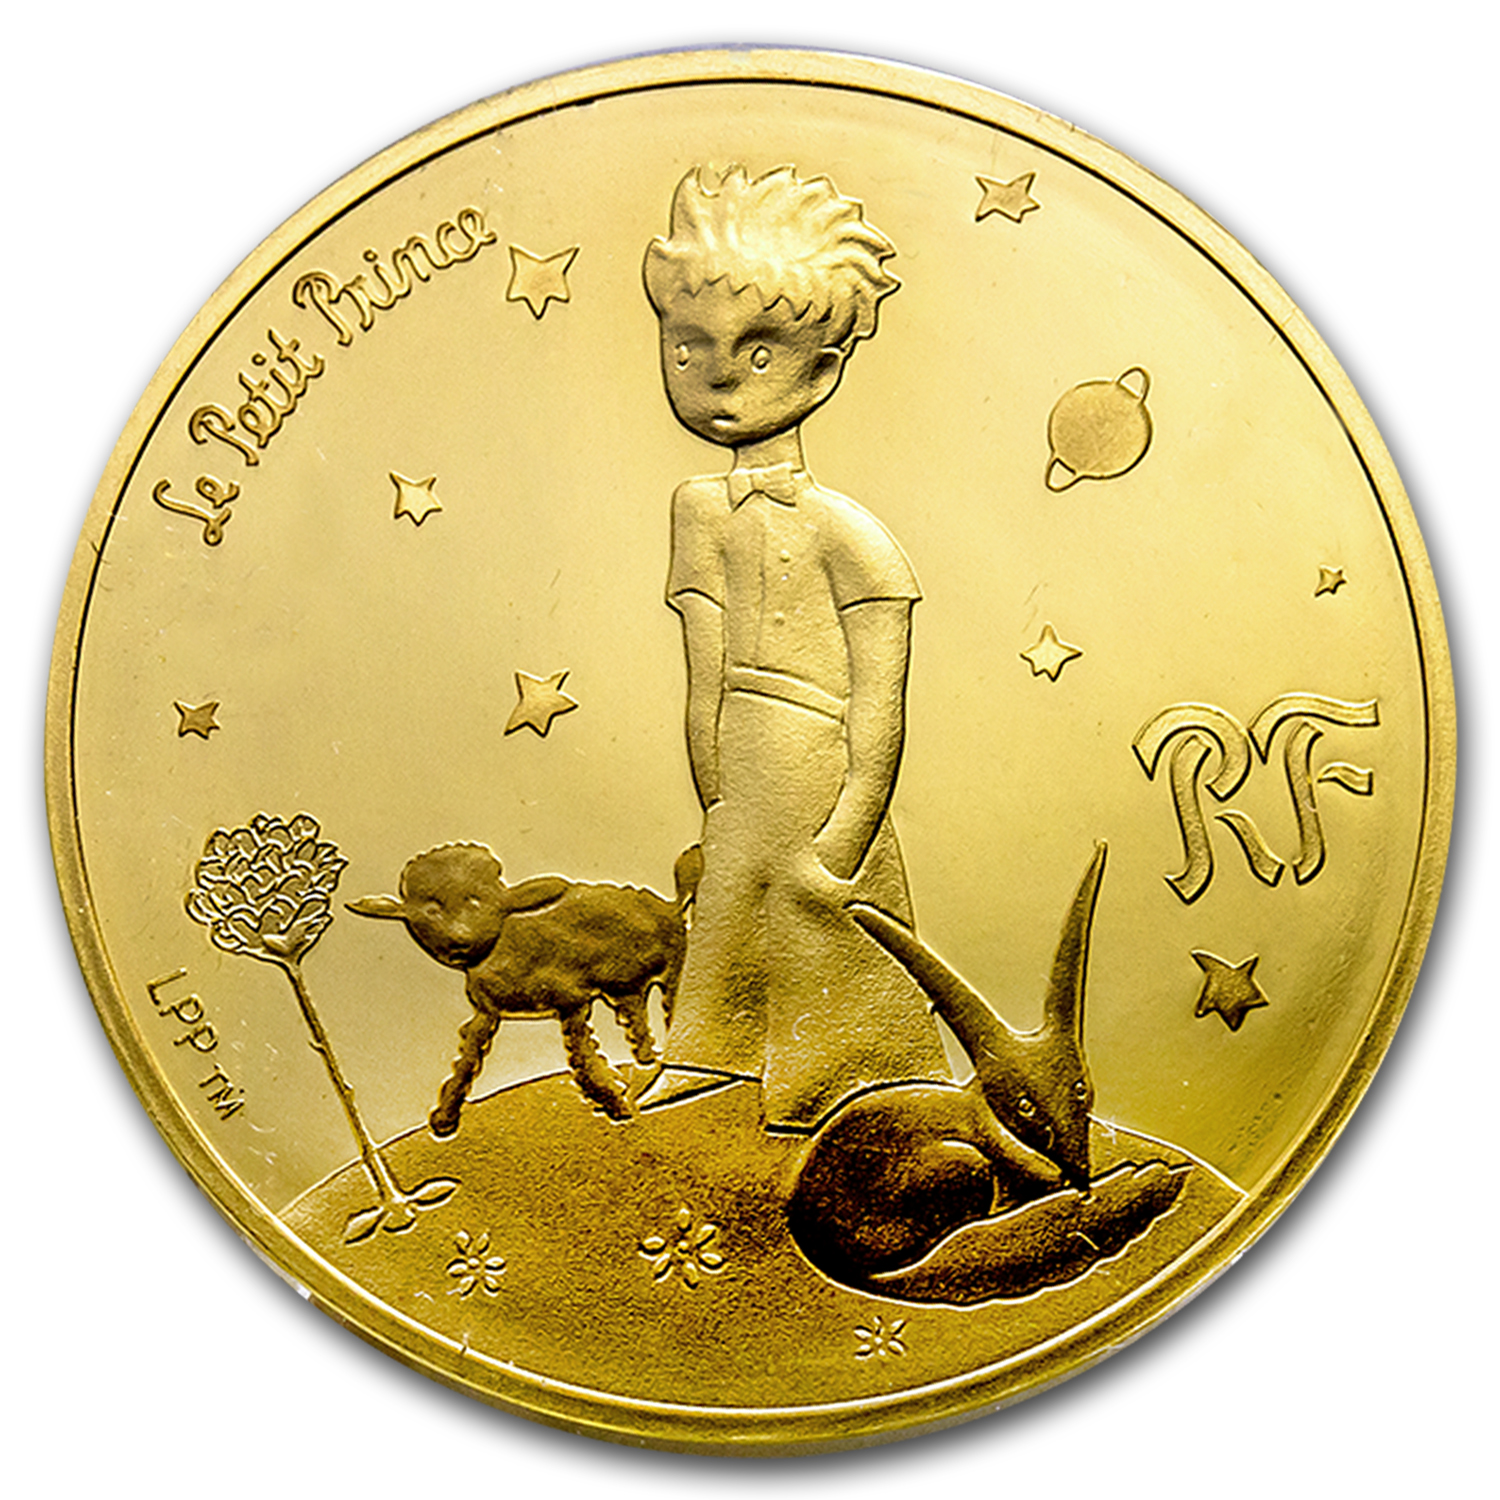 2015 France 1/4 oz Proof Gold €50 The Little Prince (Mutton)